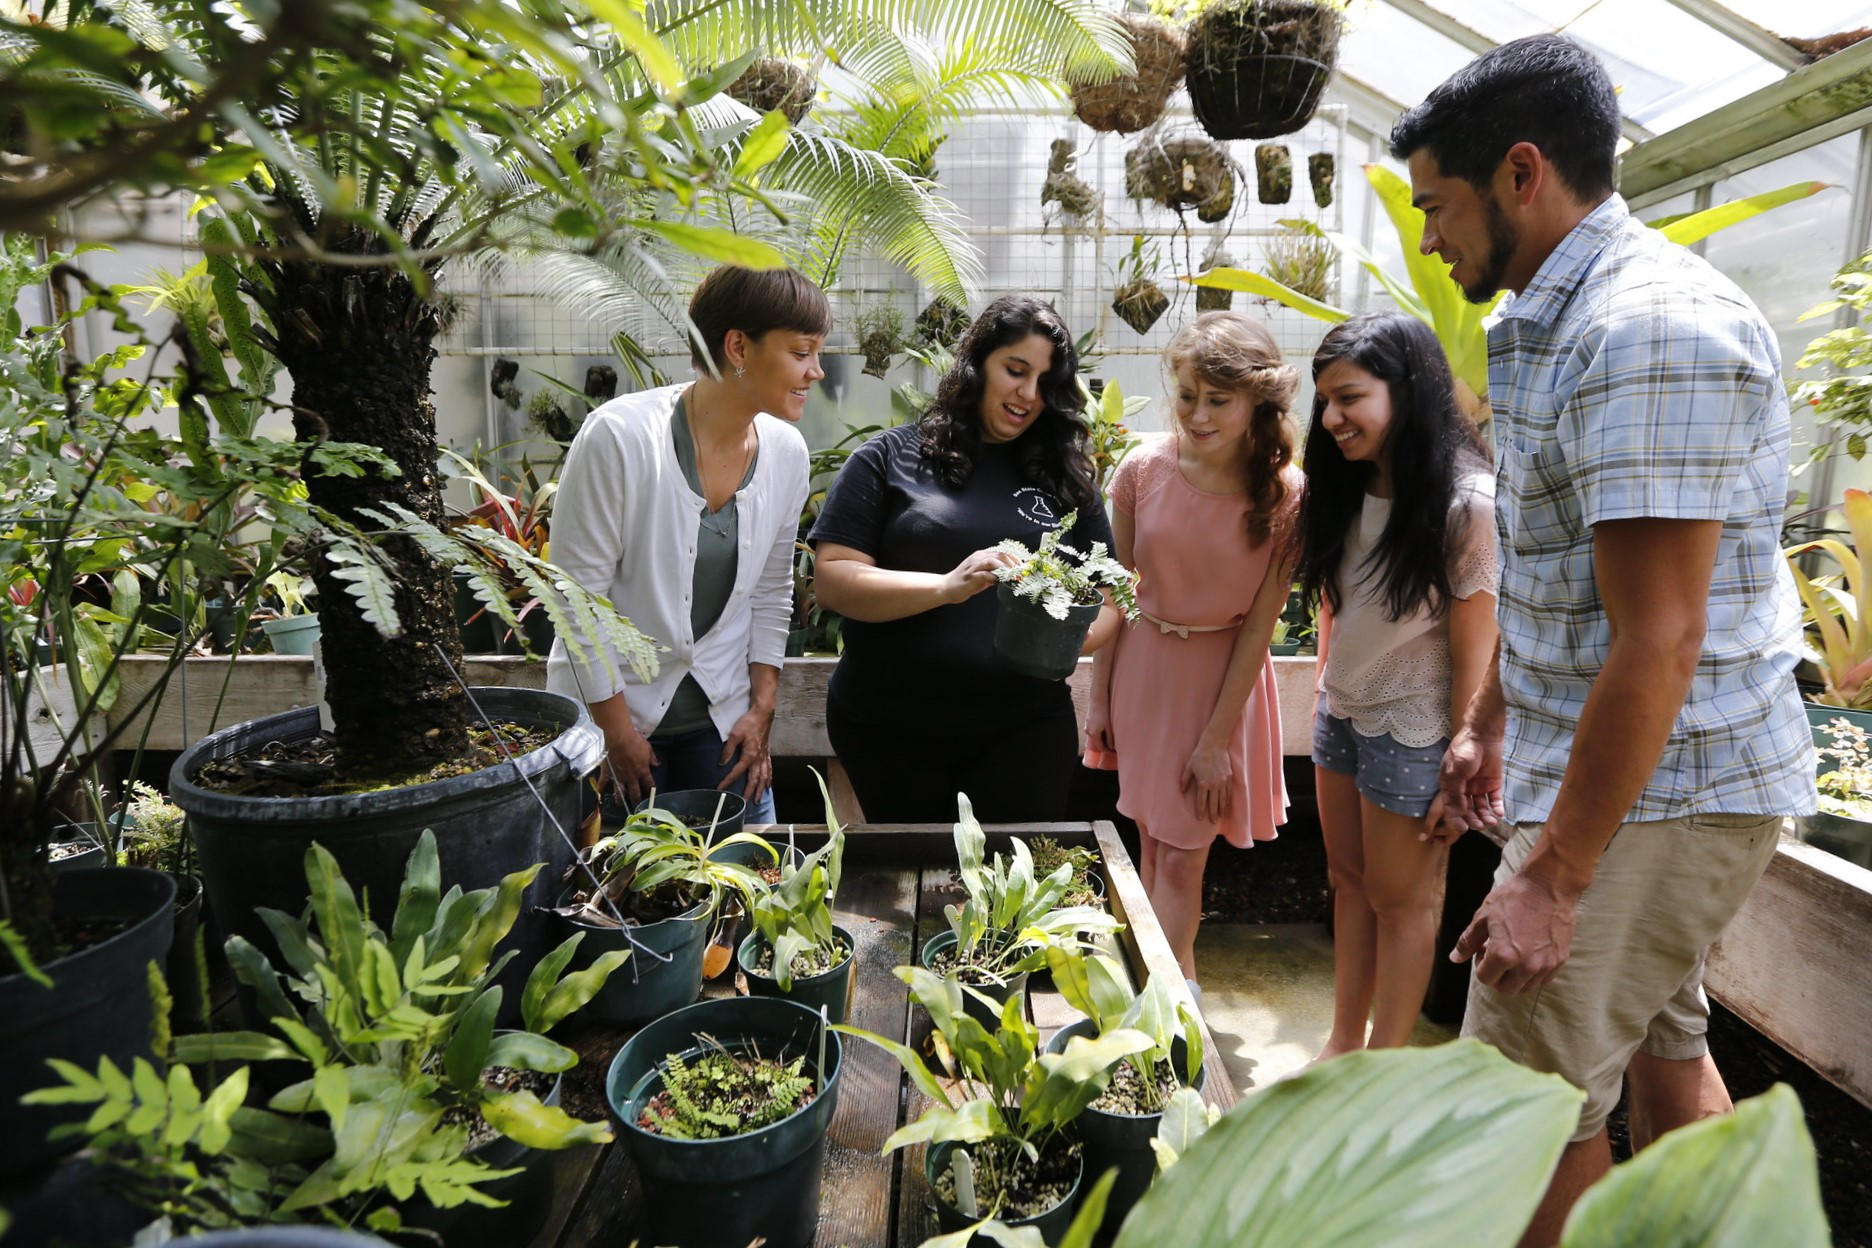 A group of five college students examining a plant in a greenhouse.